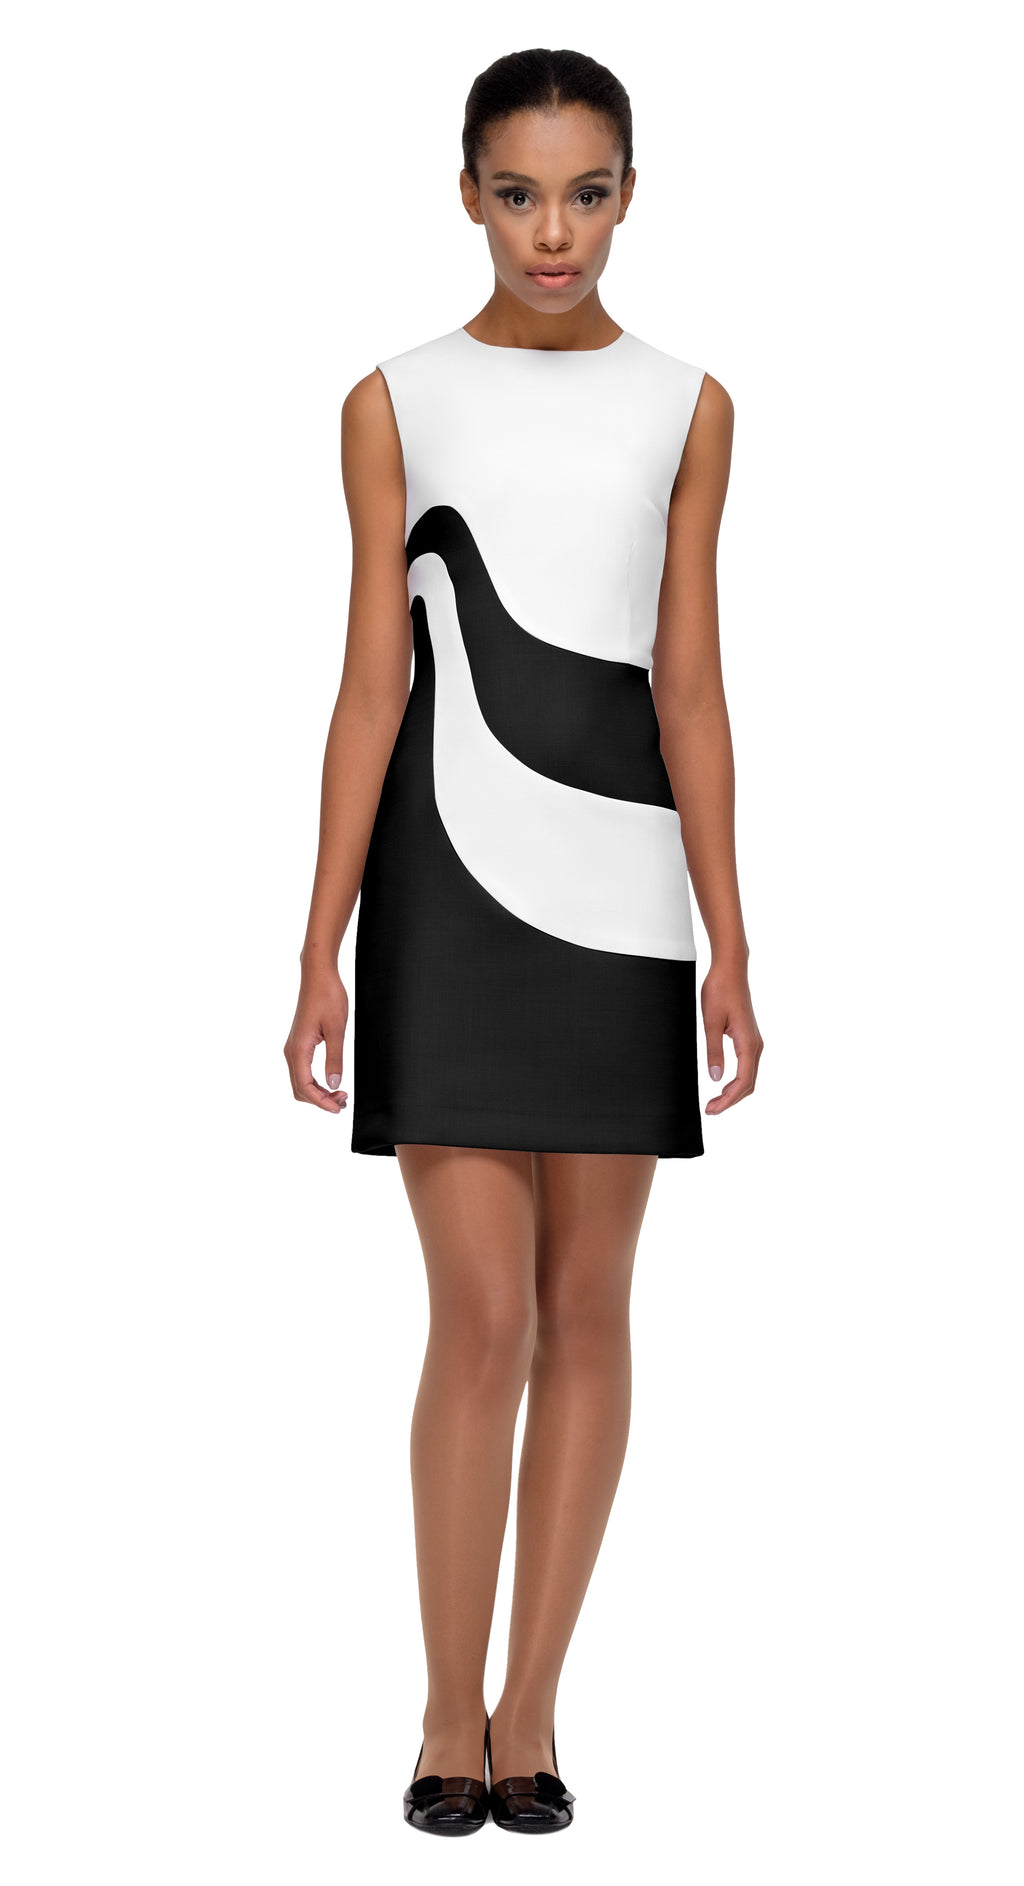 This fitted two tone dress, so immediately sixties and mod, is a true reflection of quality tailoring. The elaborate shape of the panels, within a simple but timeless fitted silhouette allows for the colour contrast to aid in making an entrance. Made of Italian mill fabrics, from a weight that works for both summer and Autumn, it's a style that can be dressed up or down by way of heels, flats or even vintage kic